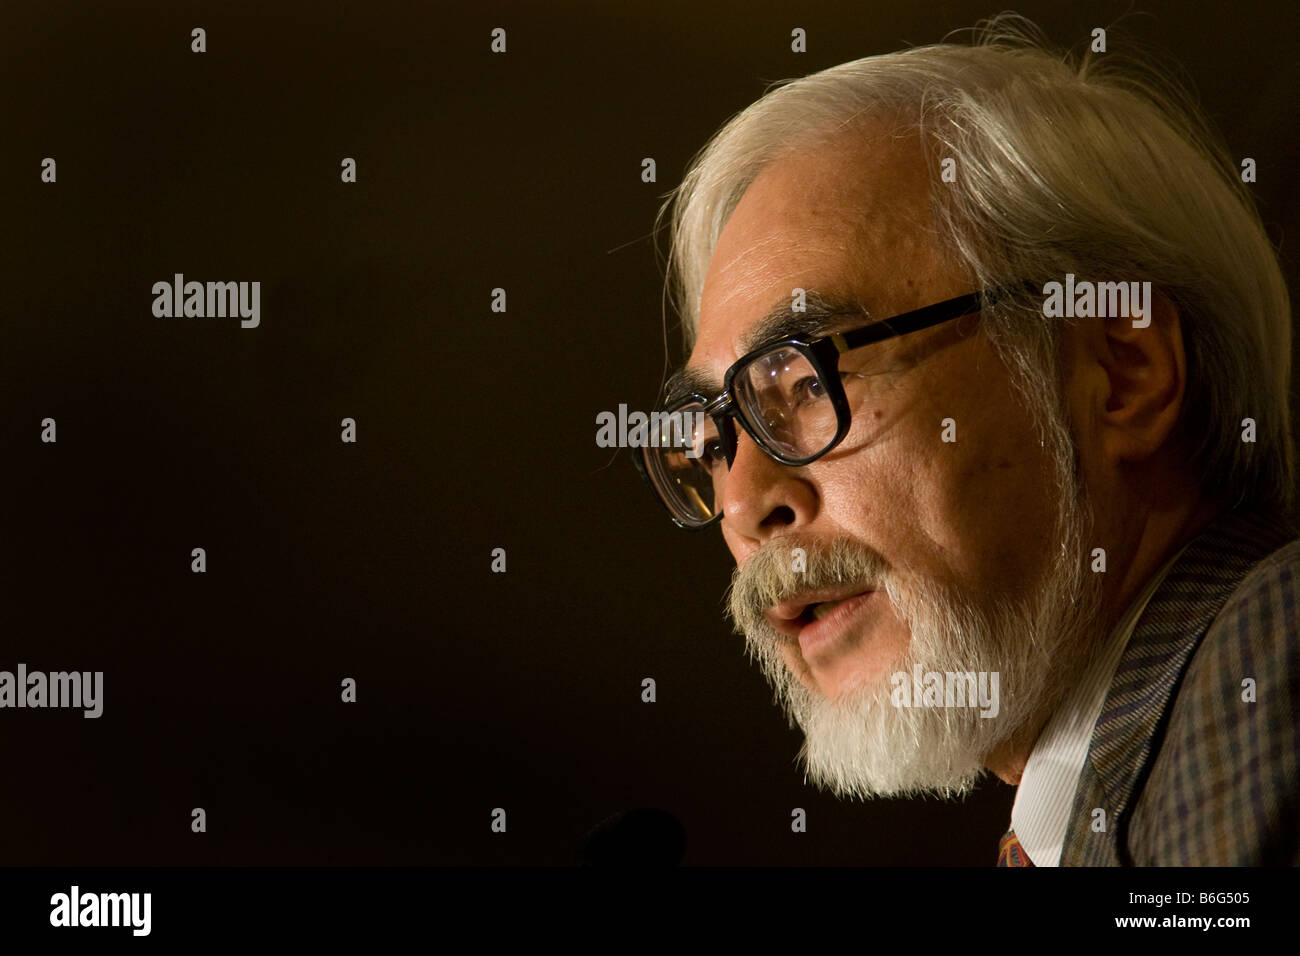 Hayao Miyazaki world famous film director and animator Stock Photo